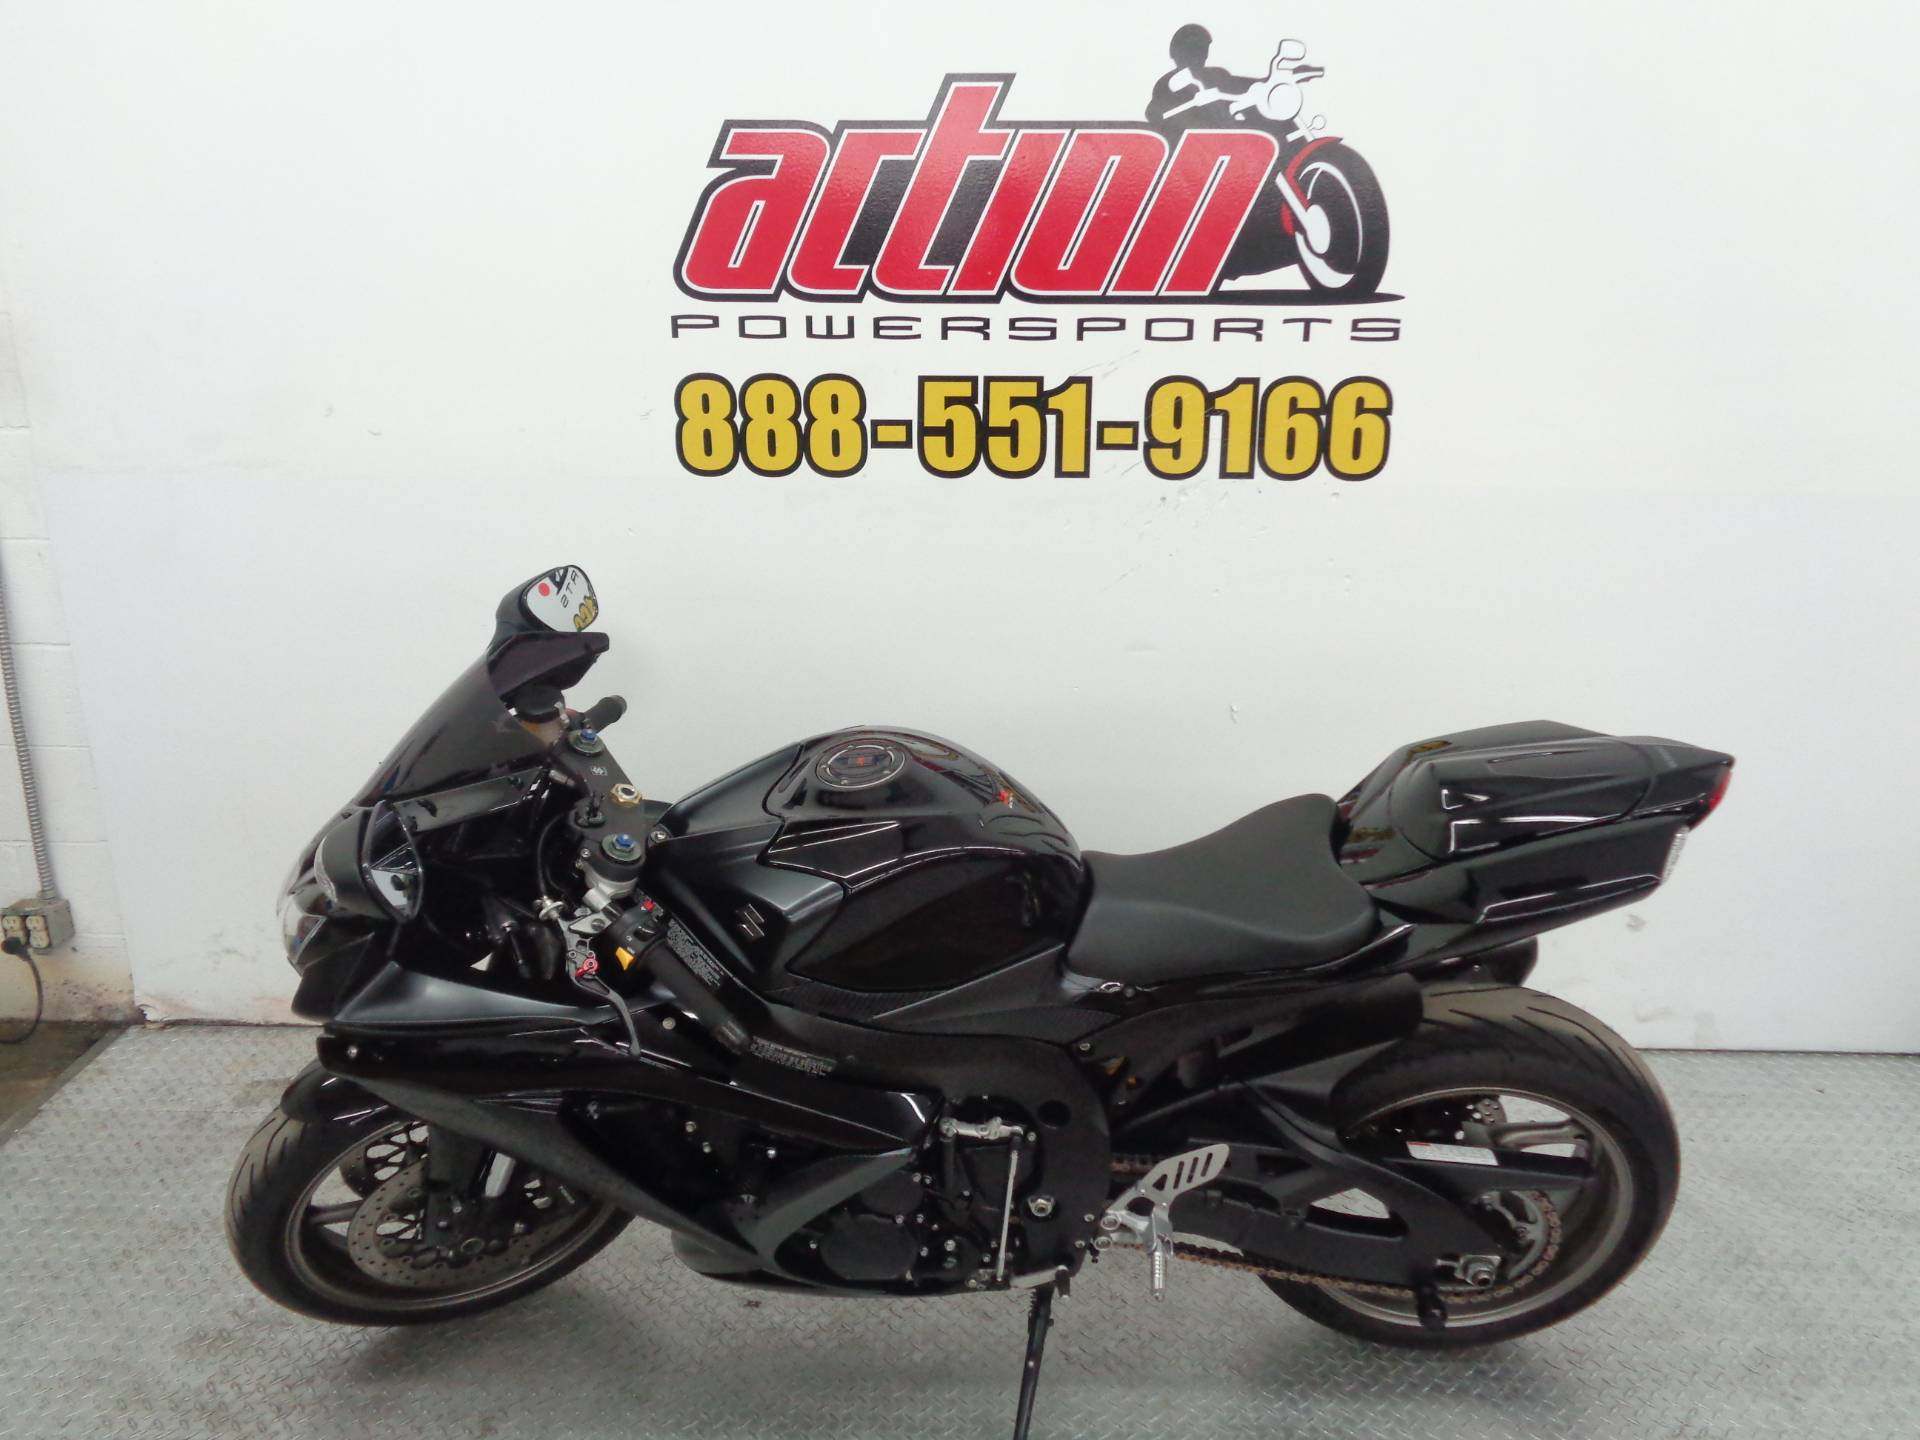 2009 Suzuki GSX-R750 in Tulsa, Oklahoma - Photo 2